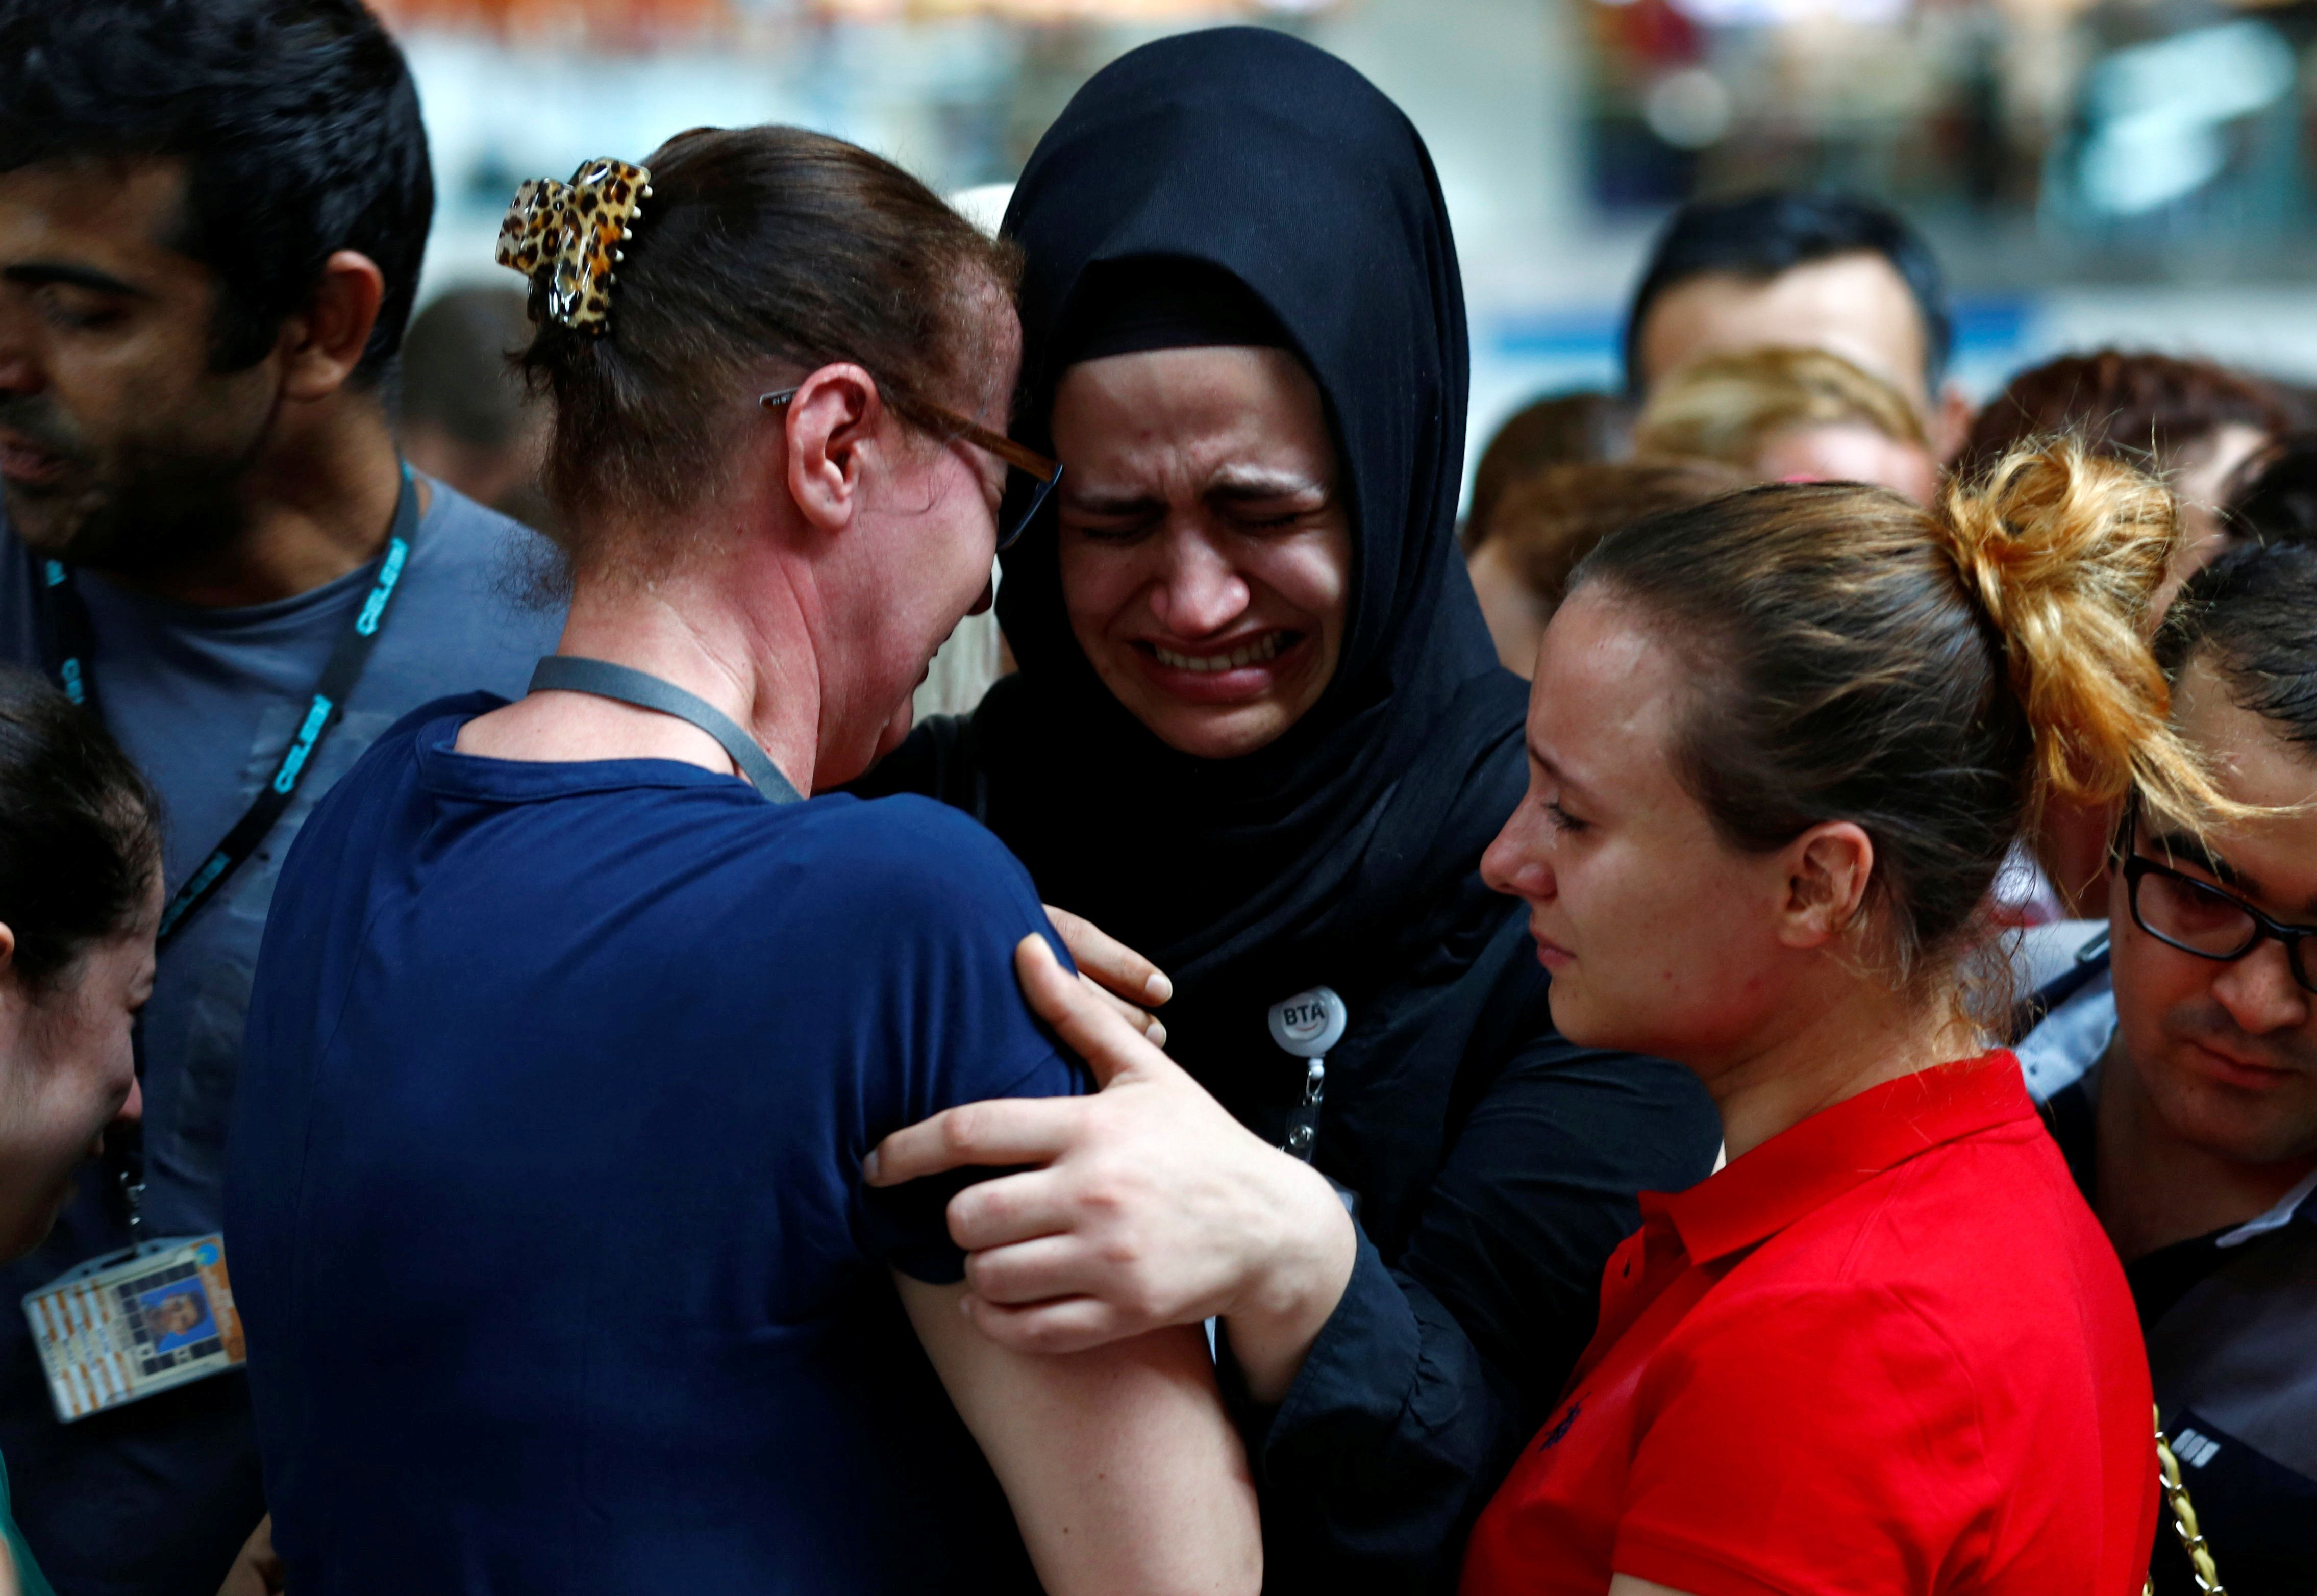 Airport employees mourn for their friends, who were killed in Tuesday's attack at the airport, during a ceremony at the international departure terminal of Ataturk airport in Istanbul, Turkey, June 30, 2016. REUTERS/Murad Sezer